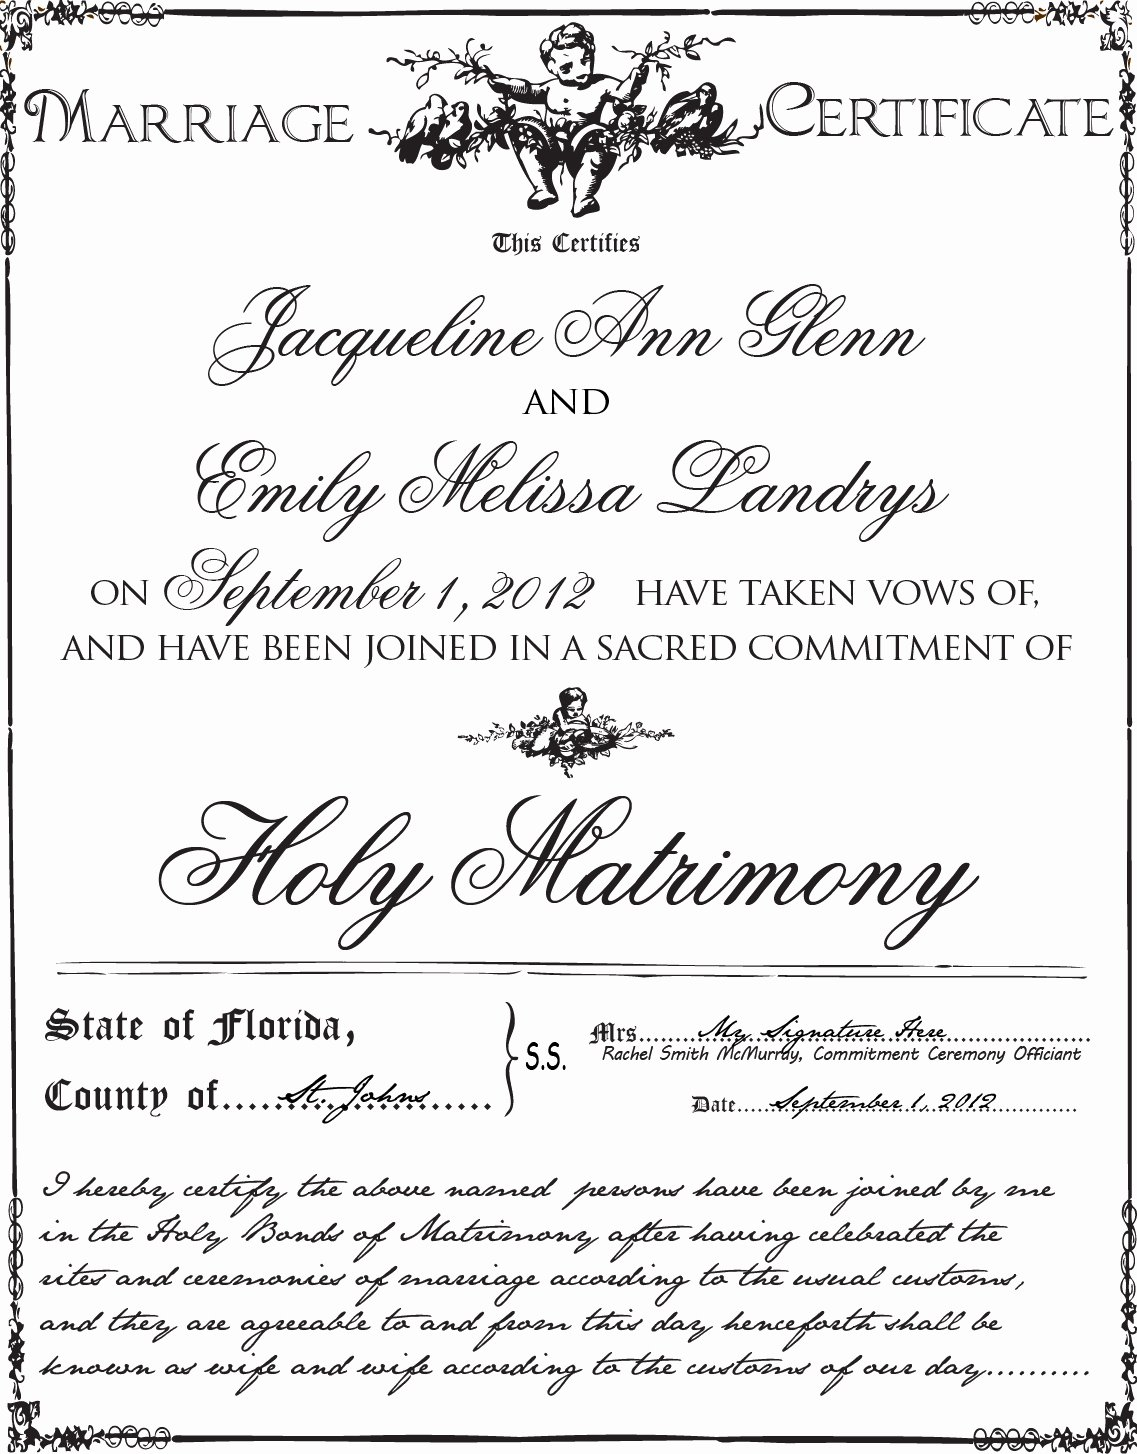 Marriage Covenant Certificate Template Best Of Gay Wedding Lesbian Wedding and Mitment Ceremony